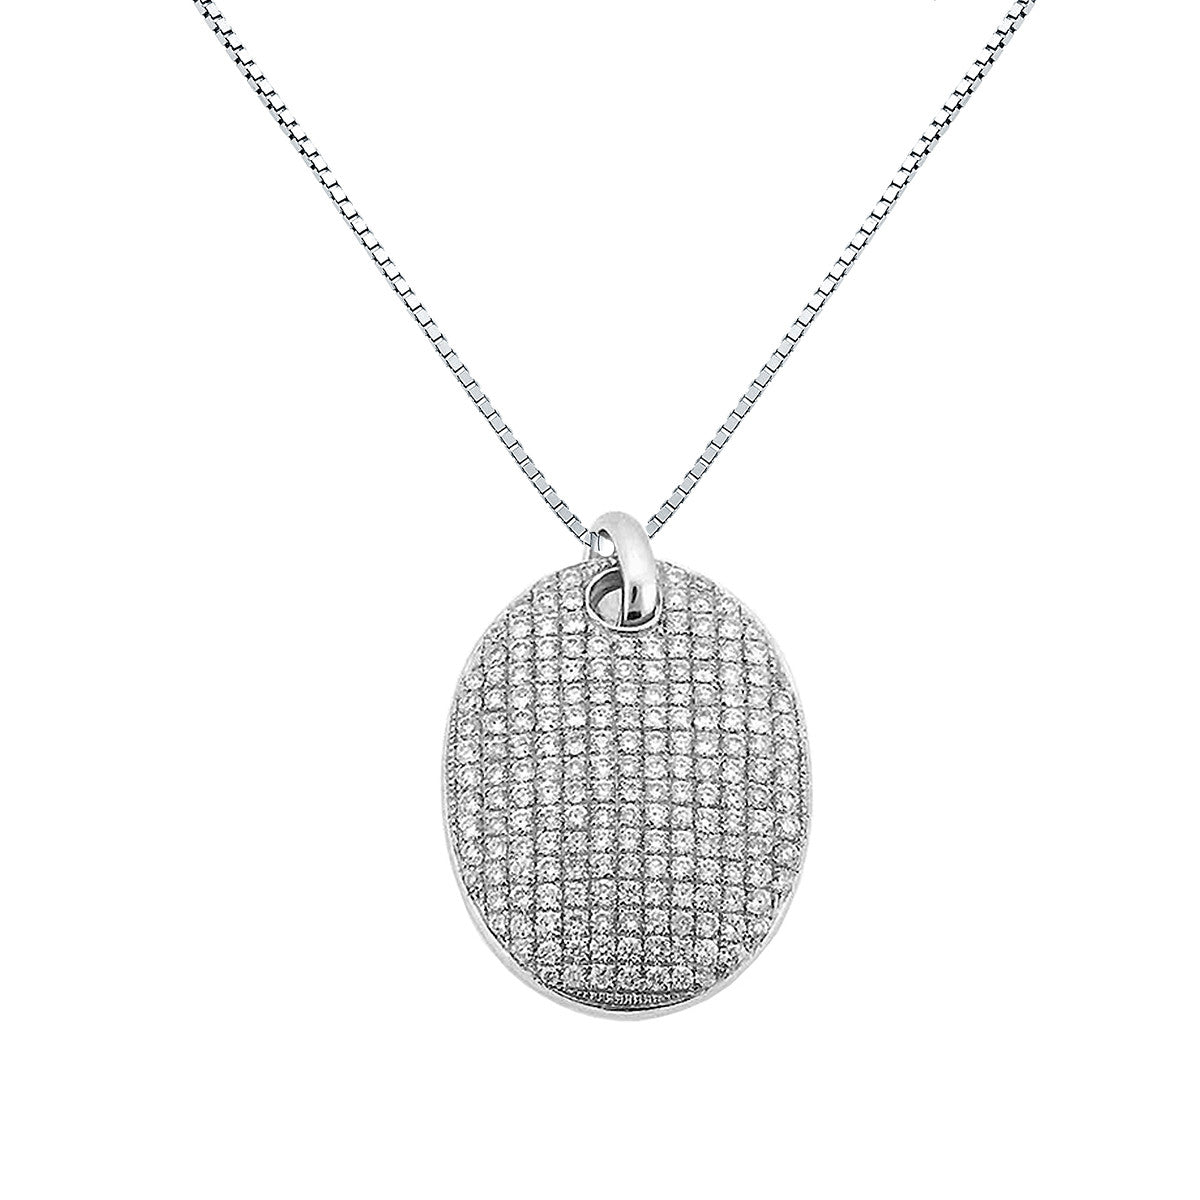 DIAMOND PENDANT OVAL MICRO PAVE NECKLACE IN 18K WHITE GOLD 0.75CTW